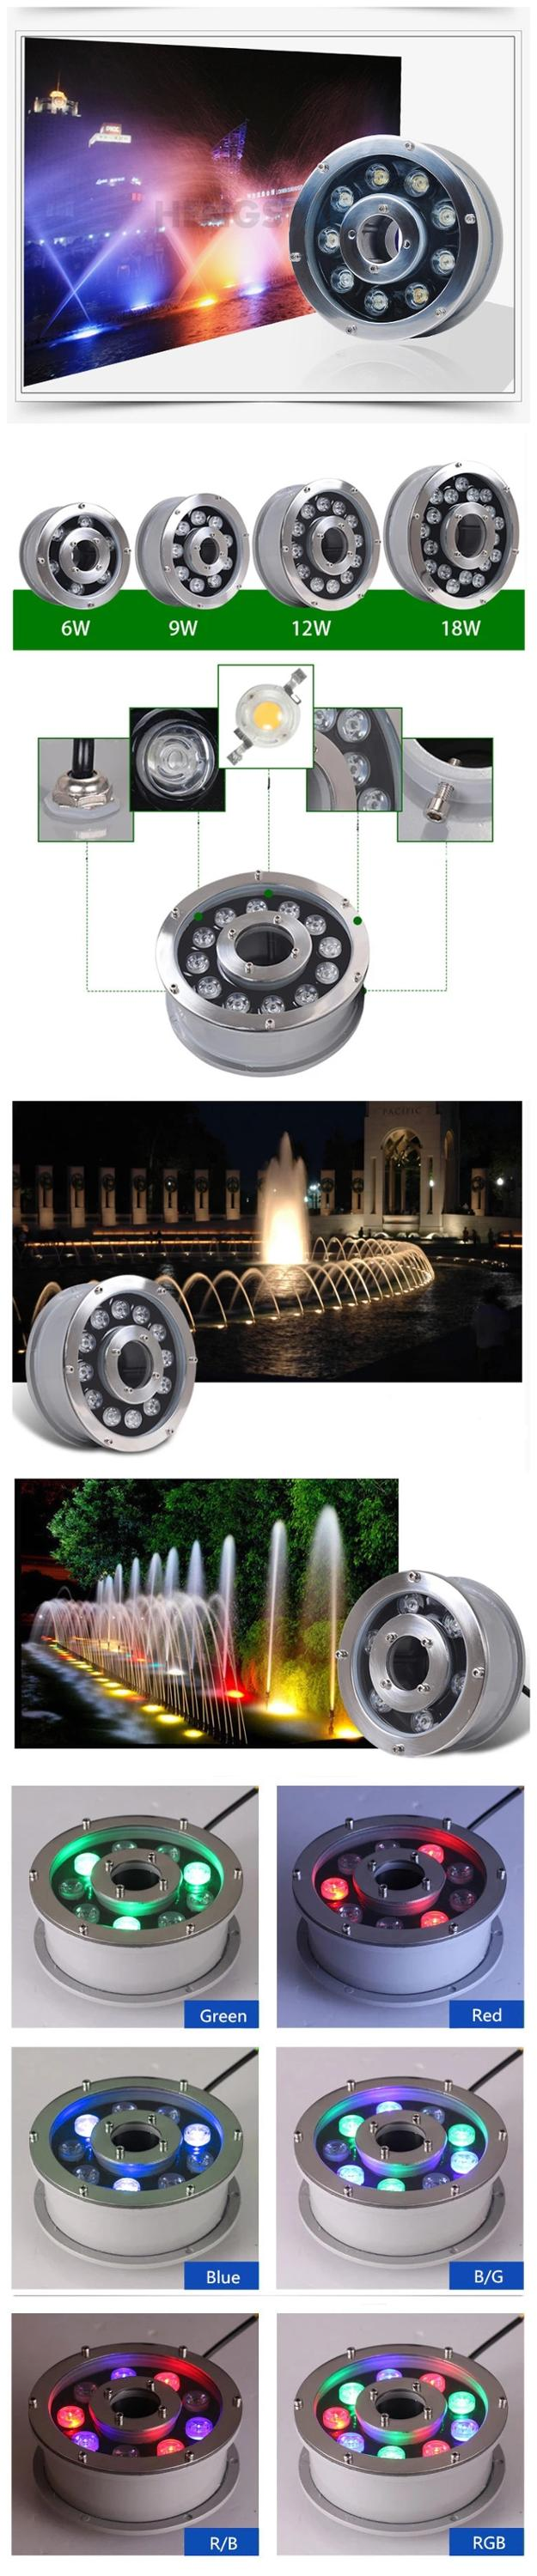 IP68 stainless steel ring  low voltage 12v  led rgb fountain nozzle and light